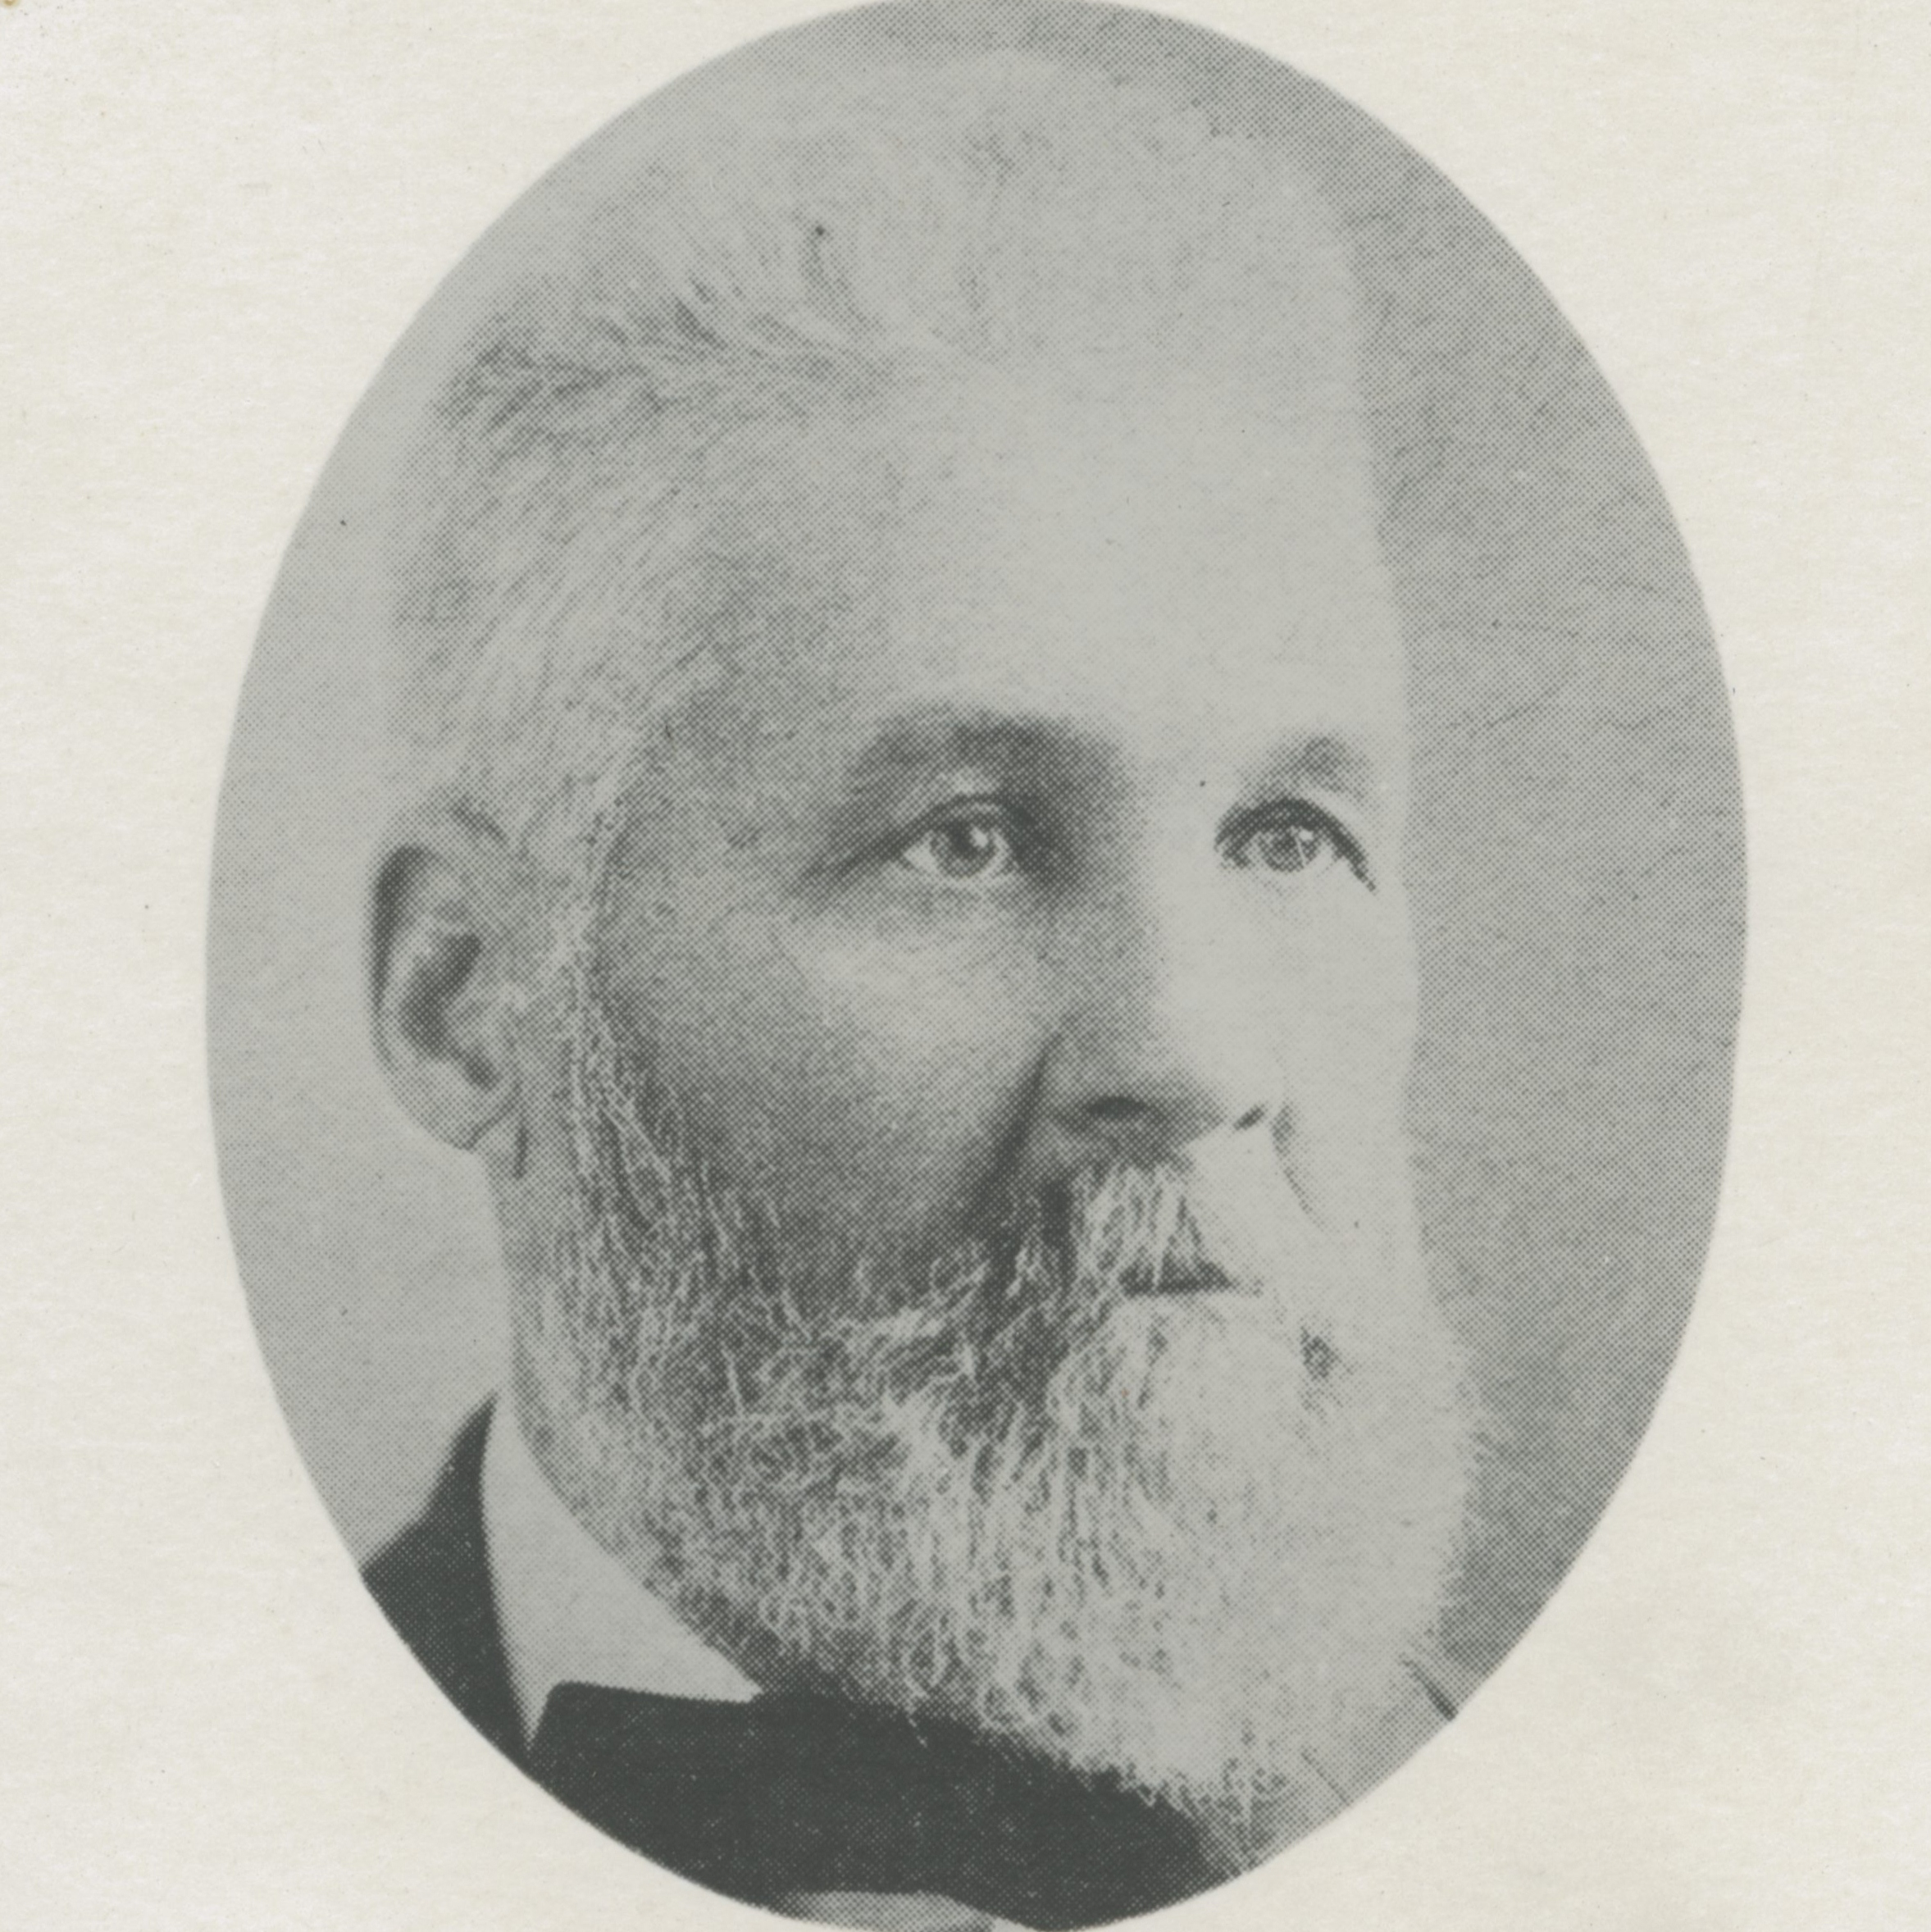 James S. Brown in 1880